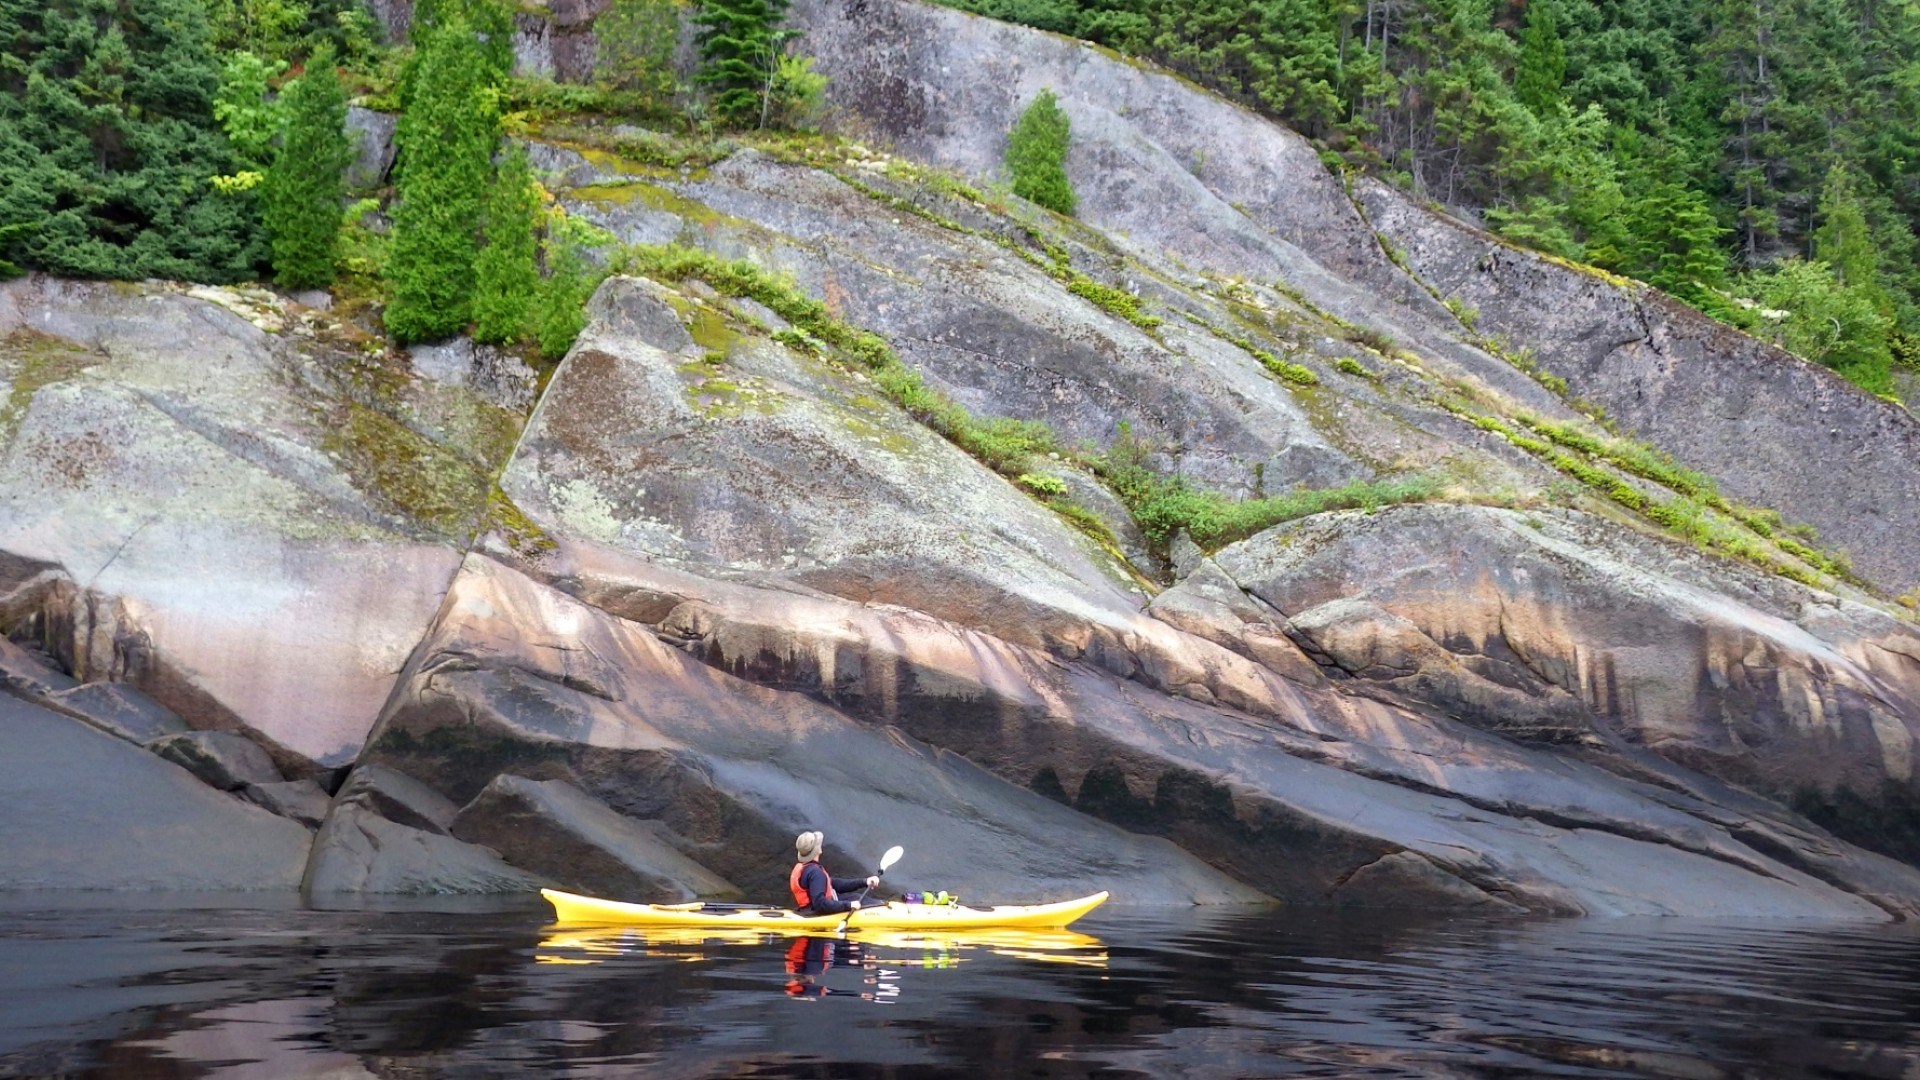 sea kayakers in Quebec, Canada